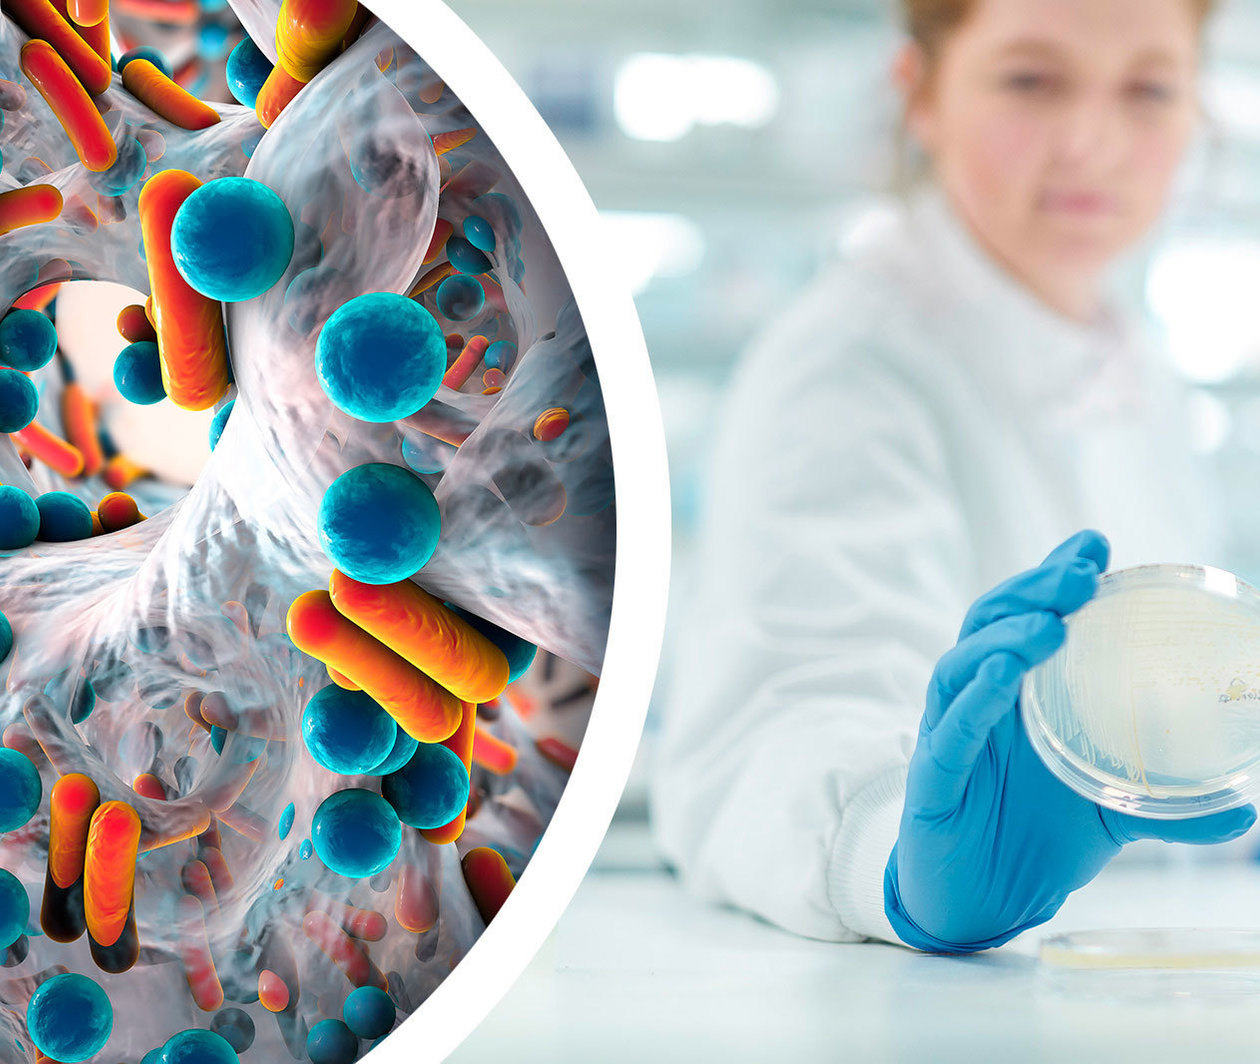 The Role of Diagnostics in the Antimicrobial Resistance Response